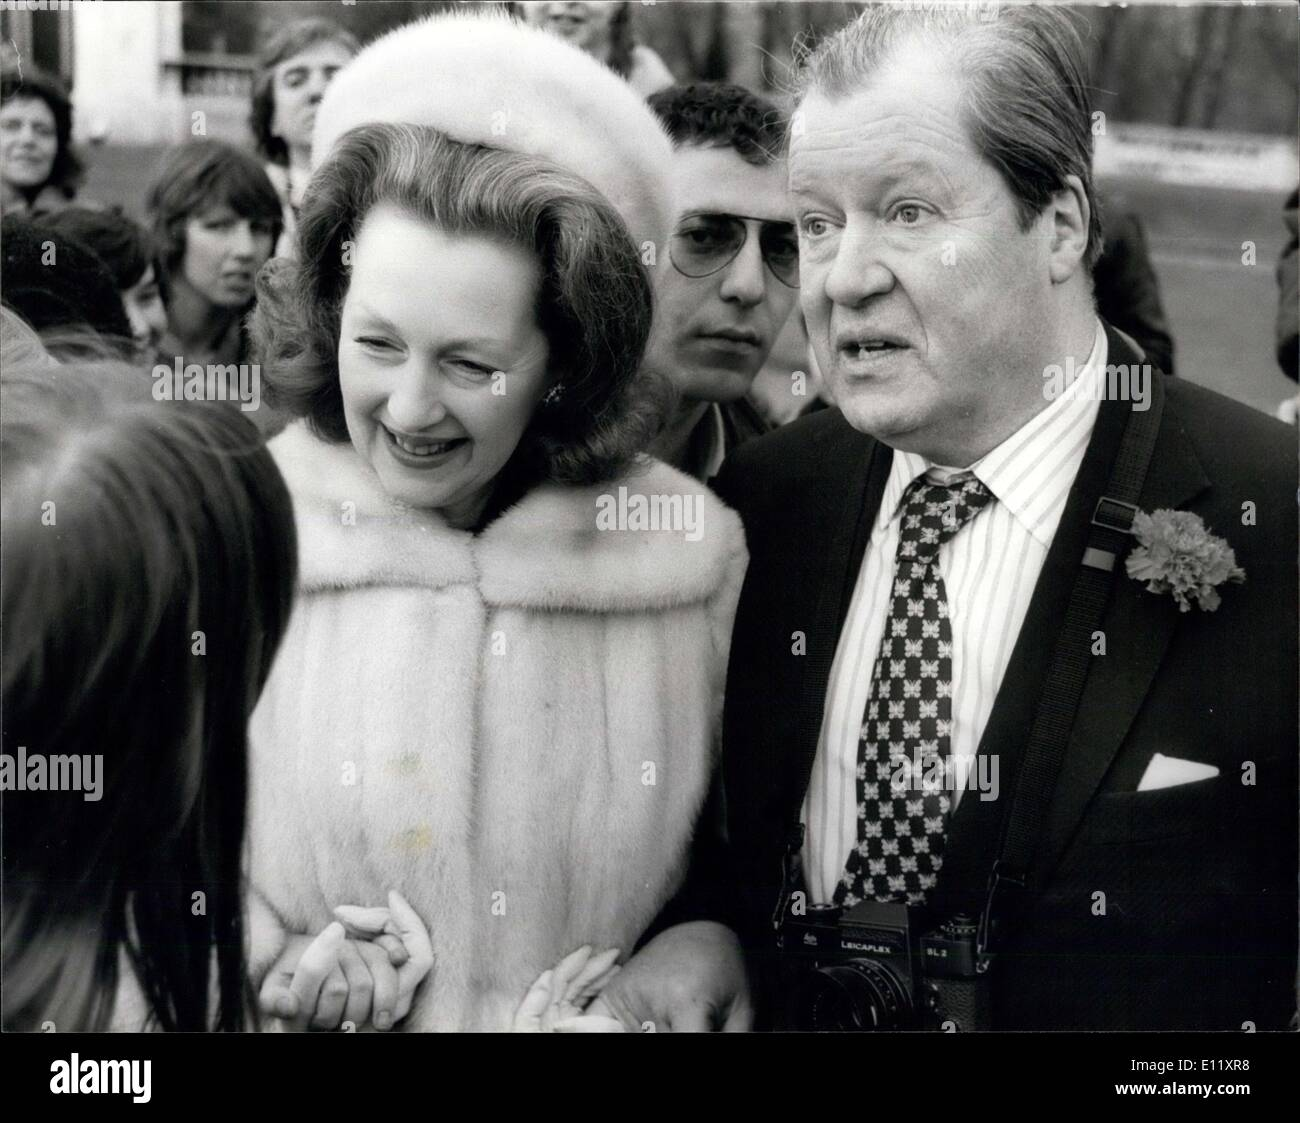 24 Agency Feb. 24, 1981 - Lady Diana's Father And Step Mother At The